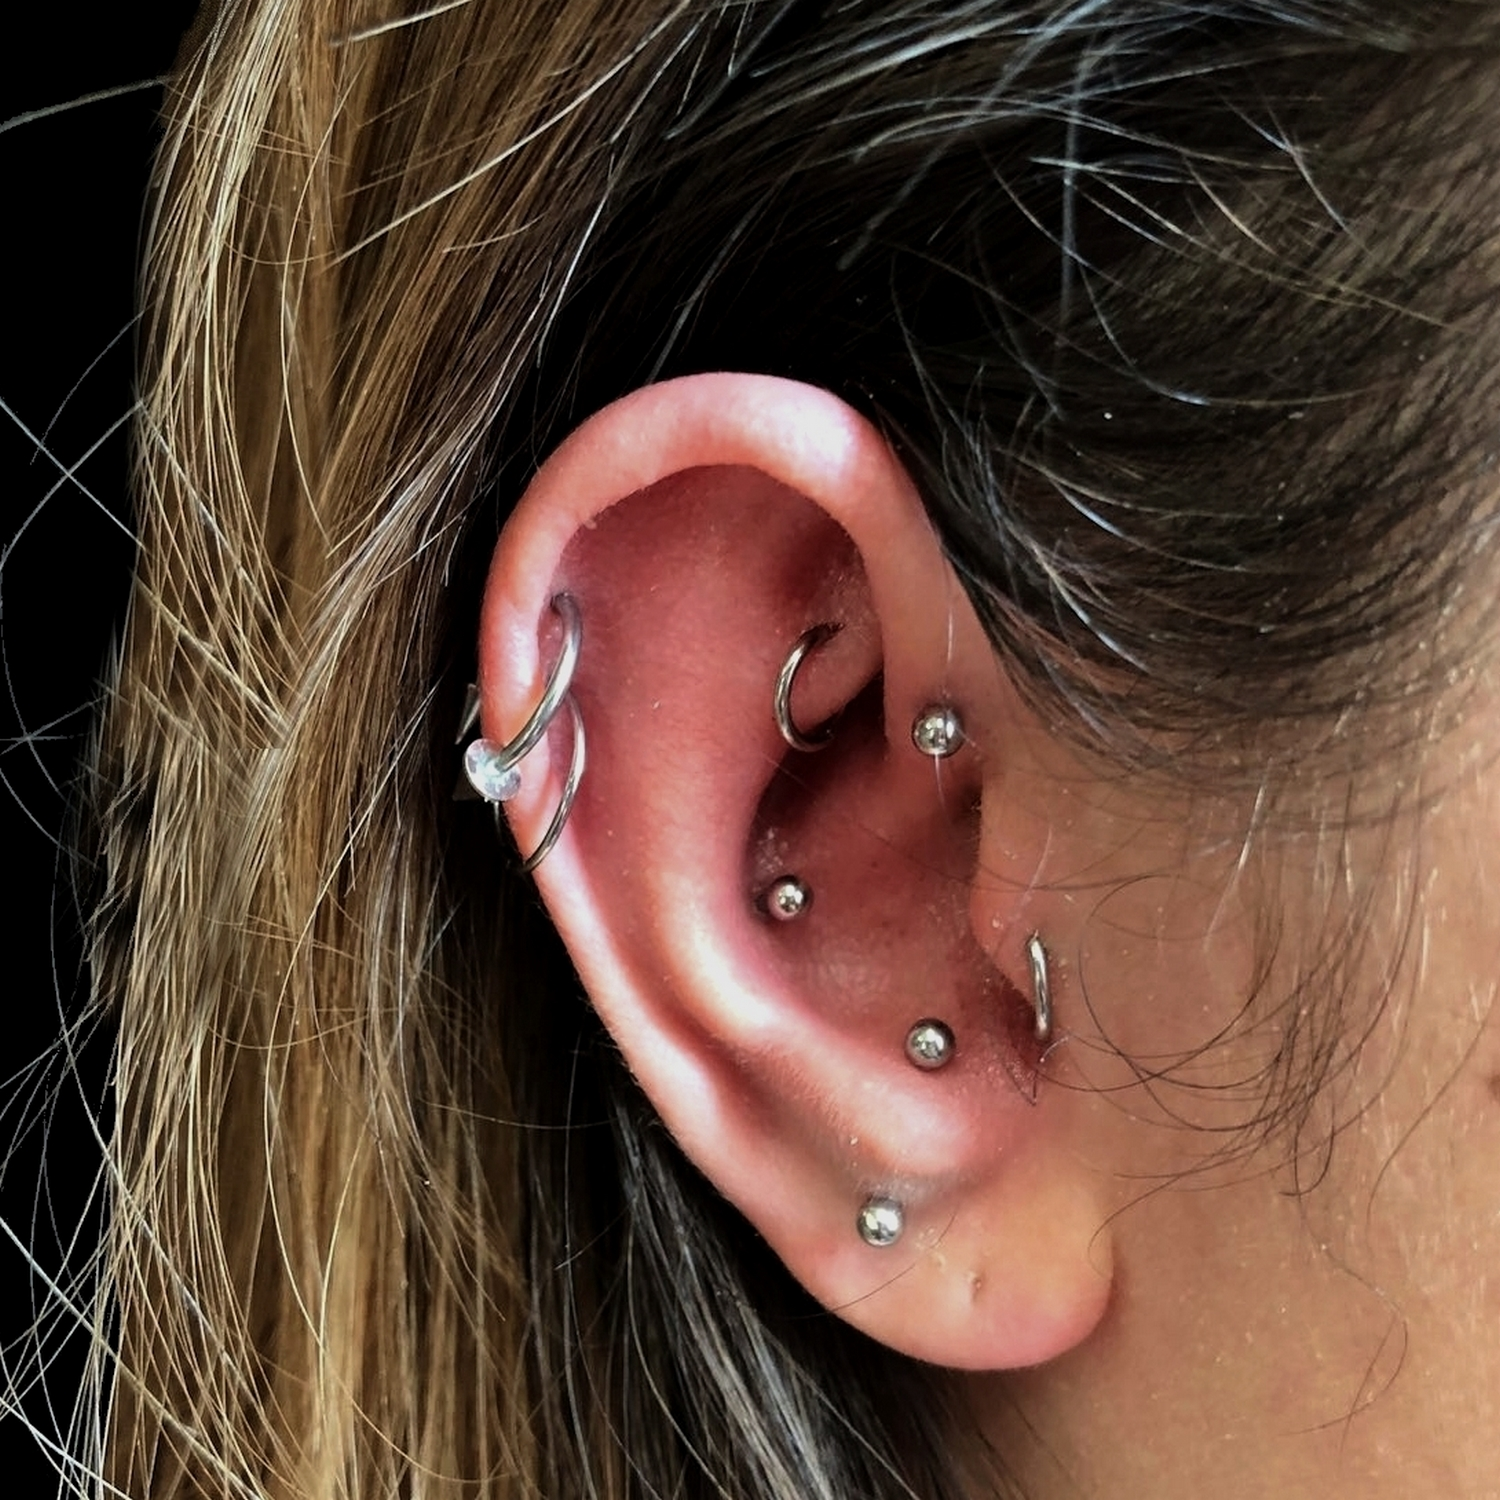 antitragus,rook,piercing,istanbul